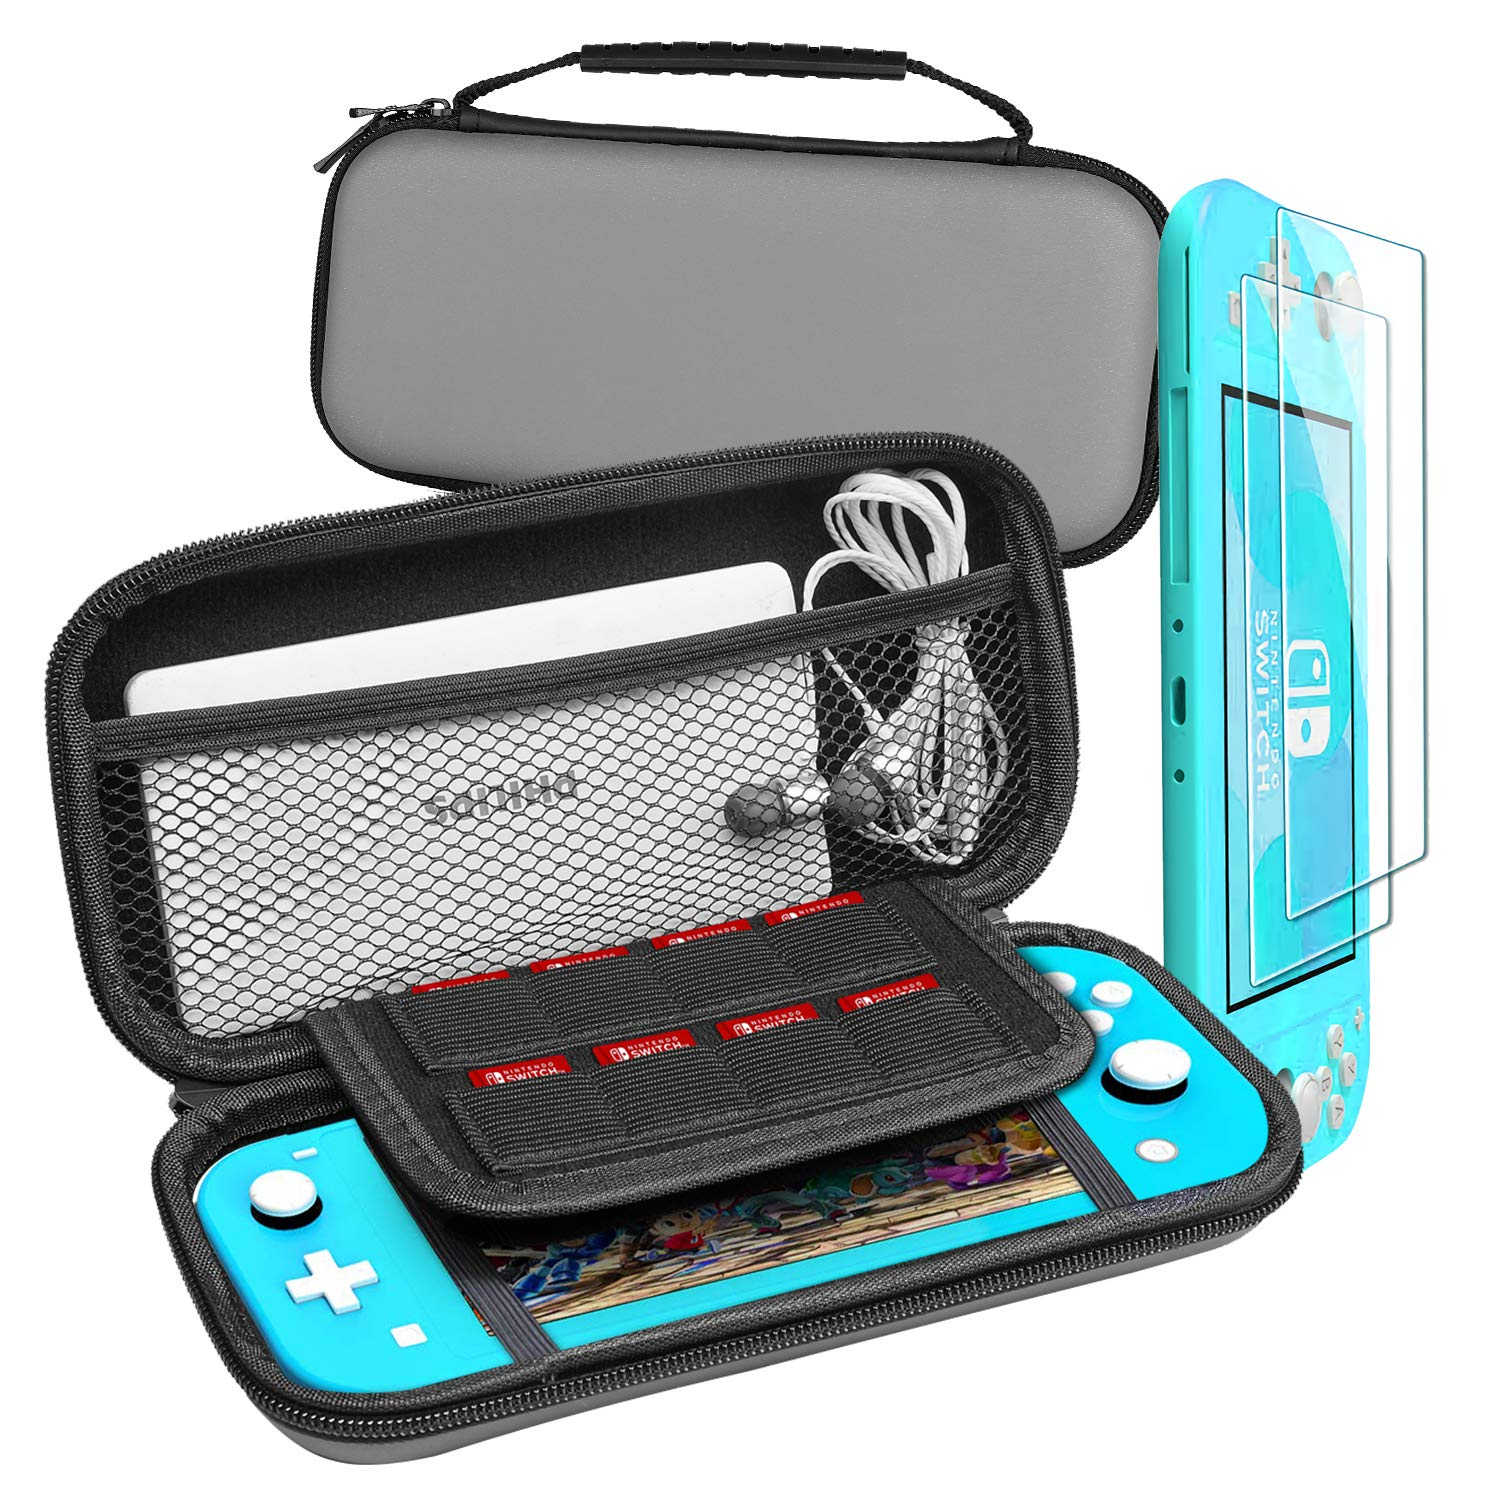 UCMDA Carrying Case for Nintendo Switch Lite, Portable Hard Shell Travel Case with 2-Pack Tempered Glass Screen Protector for Nintendo Switch Lite & Accessories (Gray)